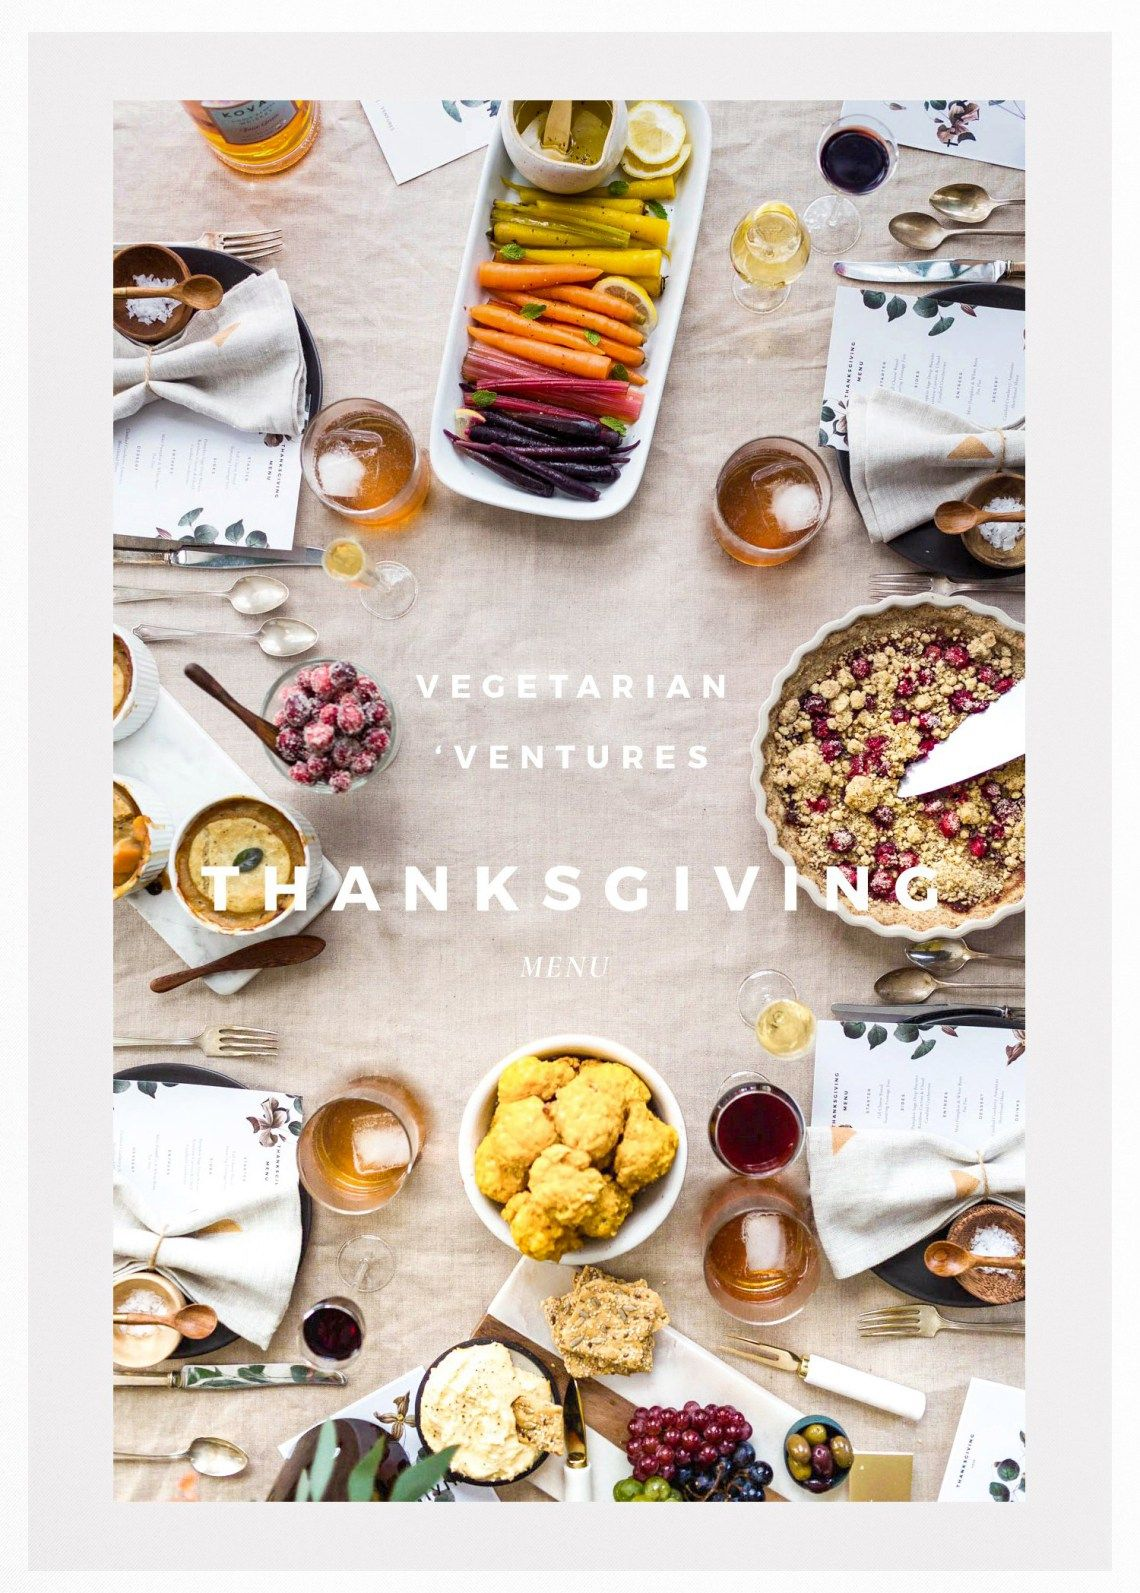 Celebrate A Vegetarian Thanksgiving Click Through To Find A Vegetarian Thanksgiving Menu Vegetarian Recipe Suggestions And Tips And Tricks For How To